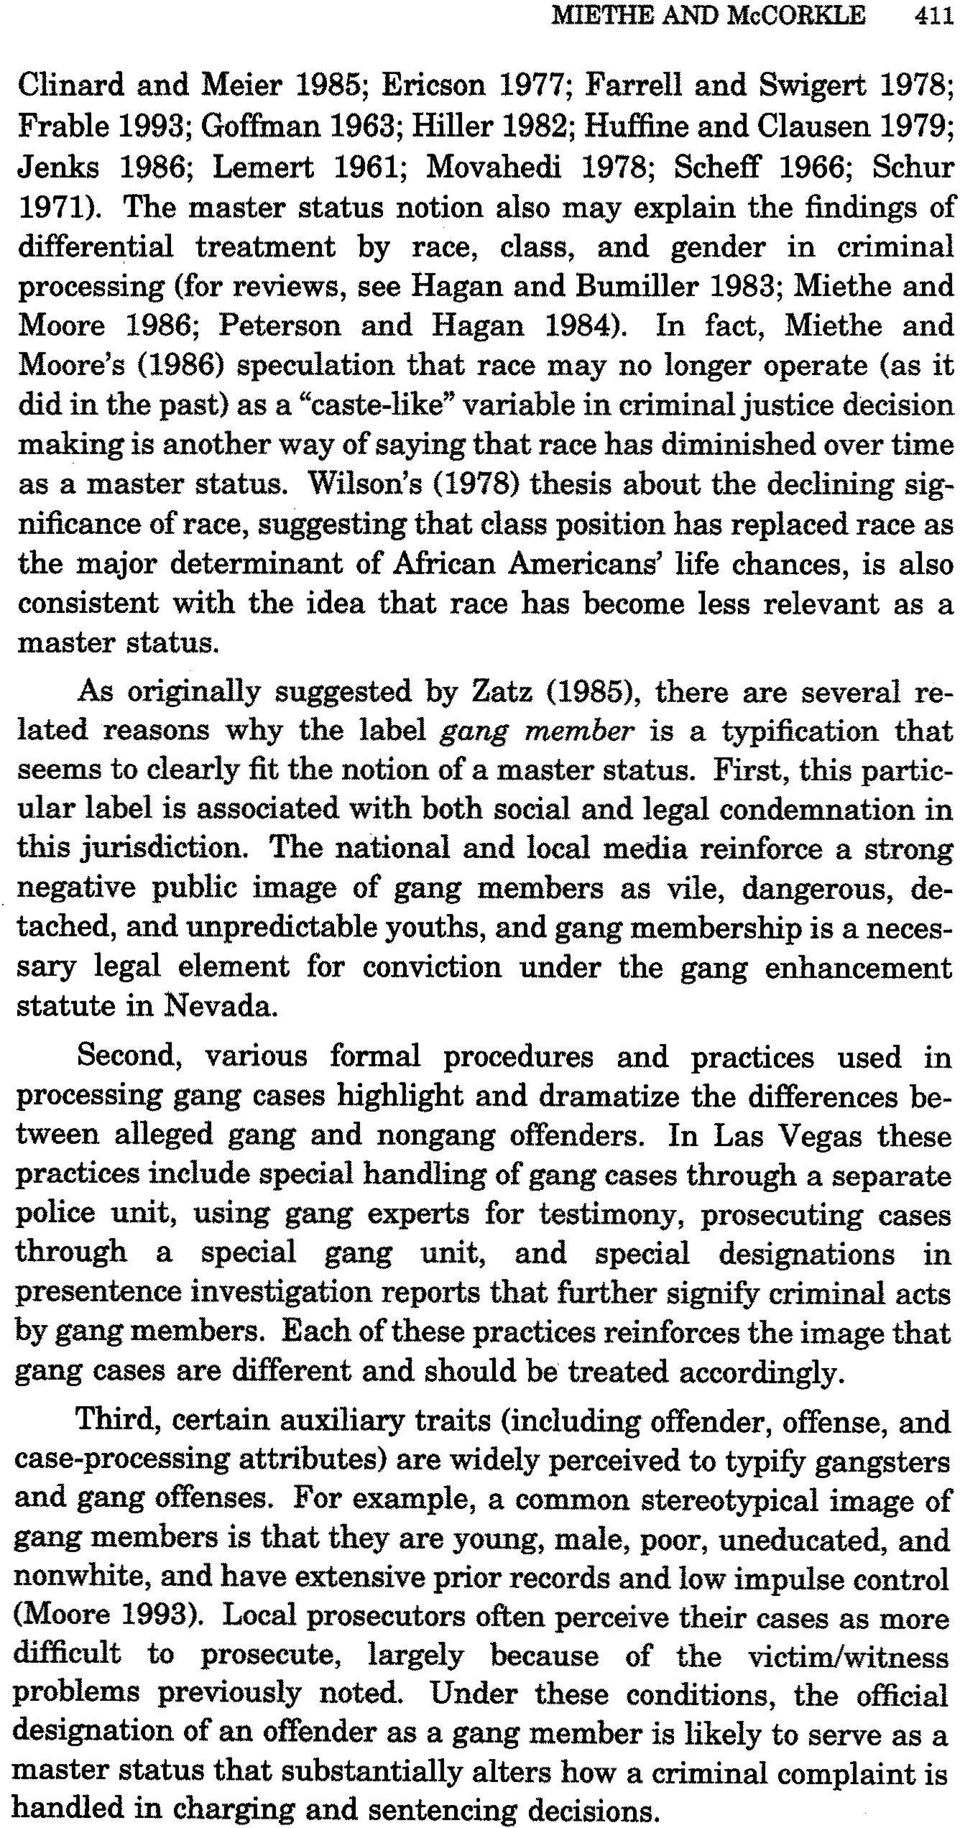 The master status notion also may explain the findings of differential treatment by race, class, and gender in criminal processing (for reviews, see Hagan and Bumiller 1983; Miethe and Moore 1986;